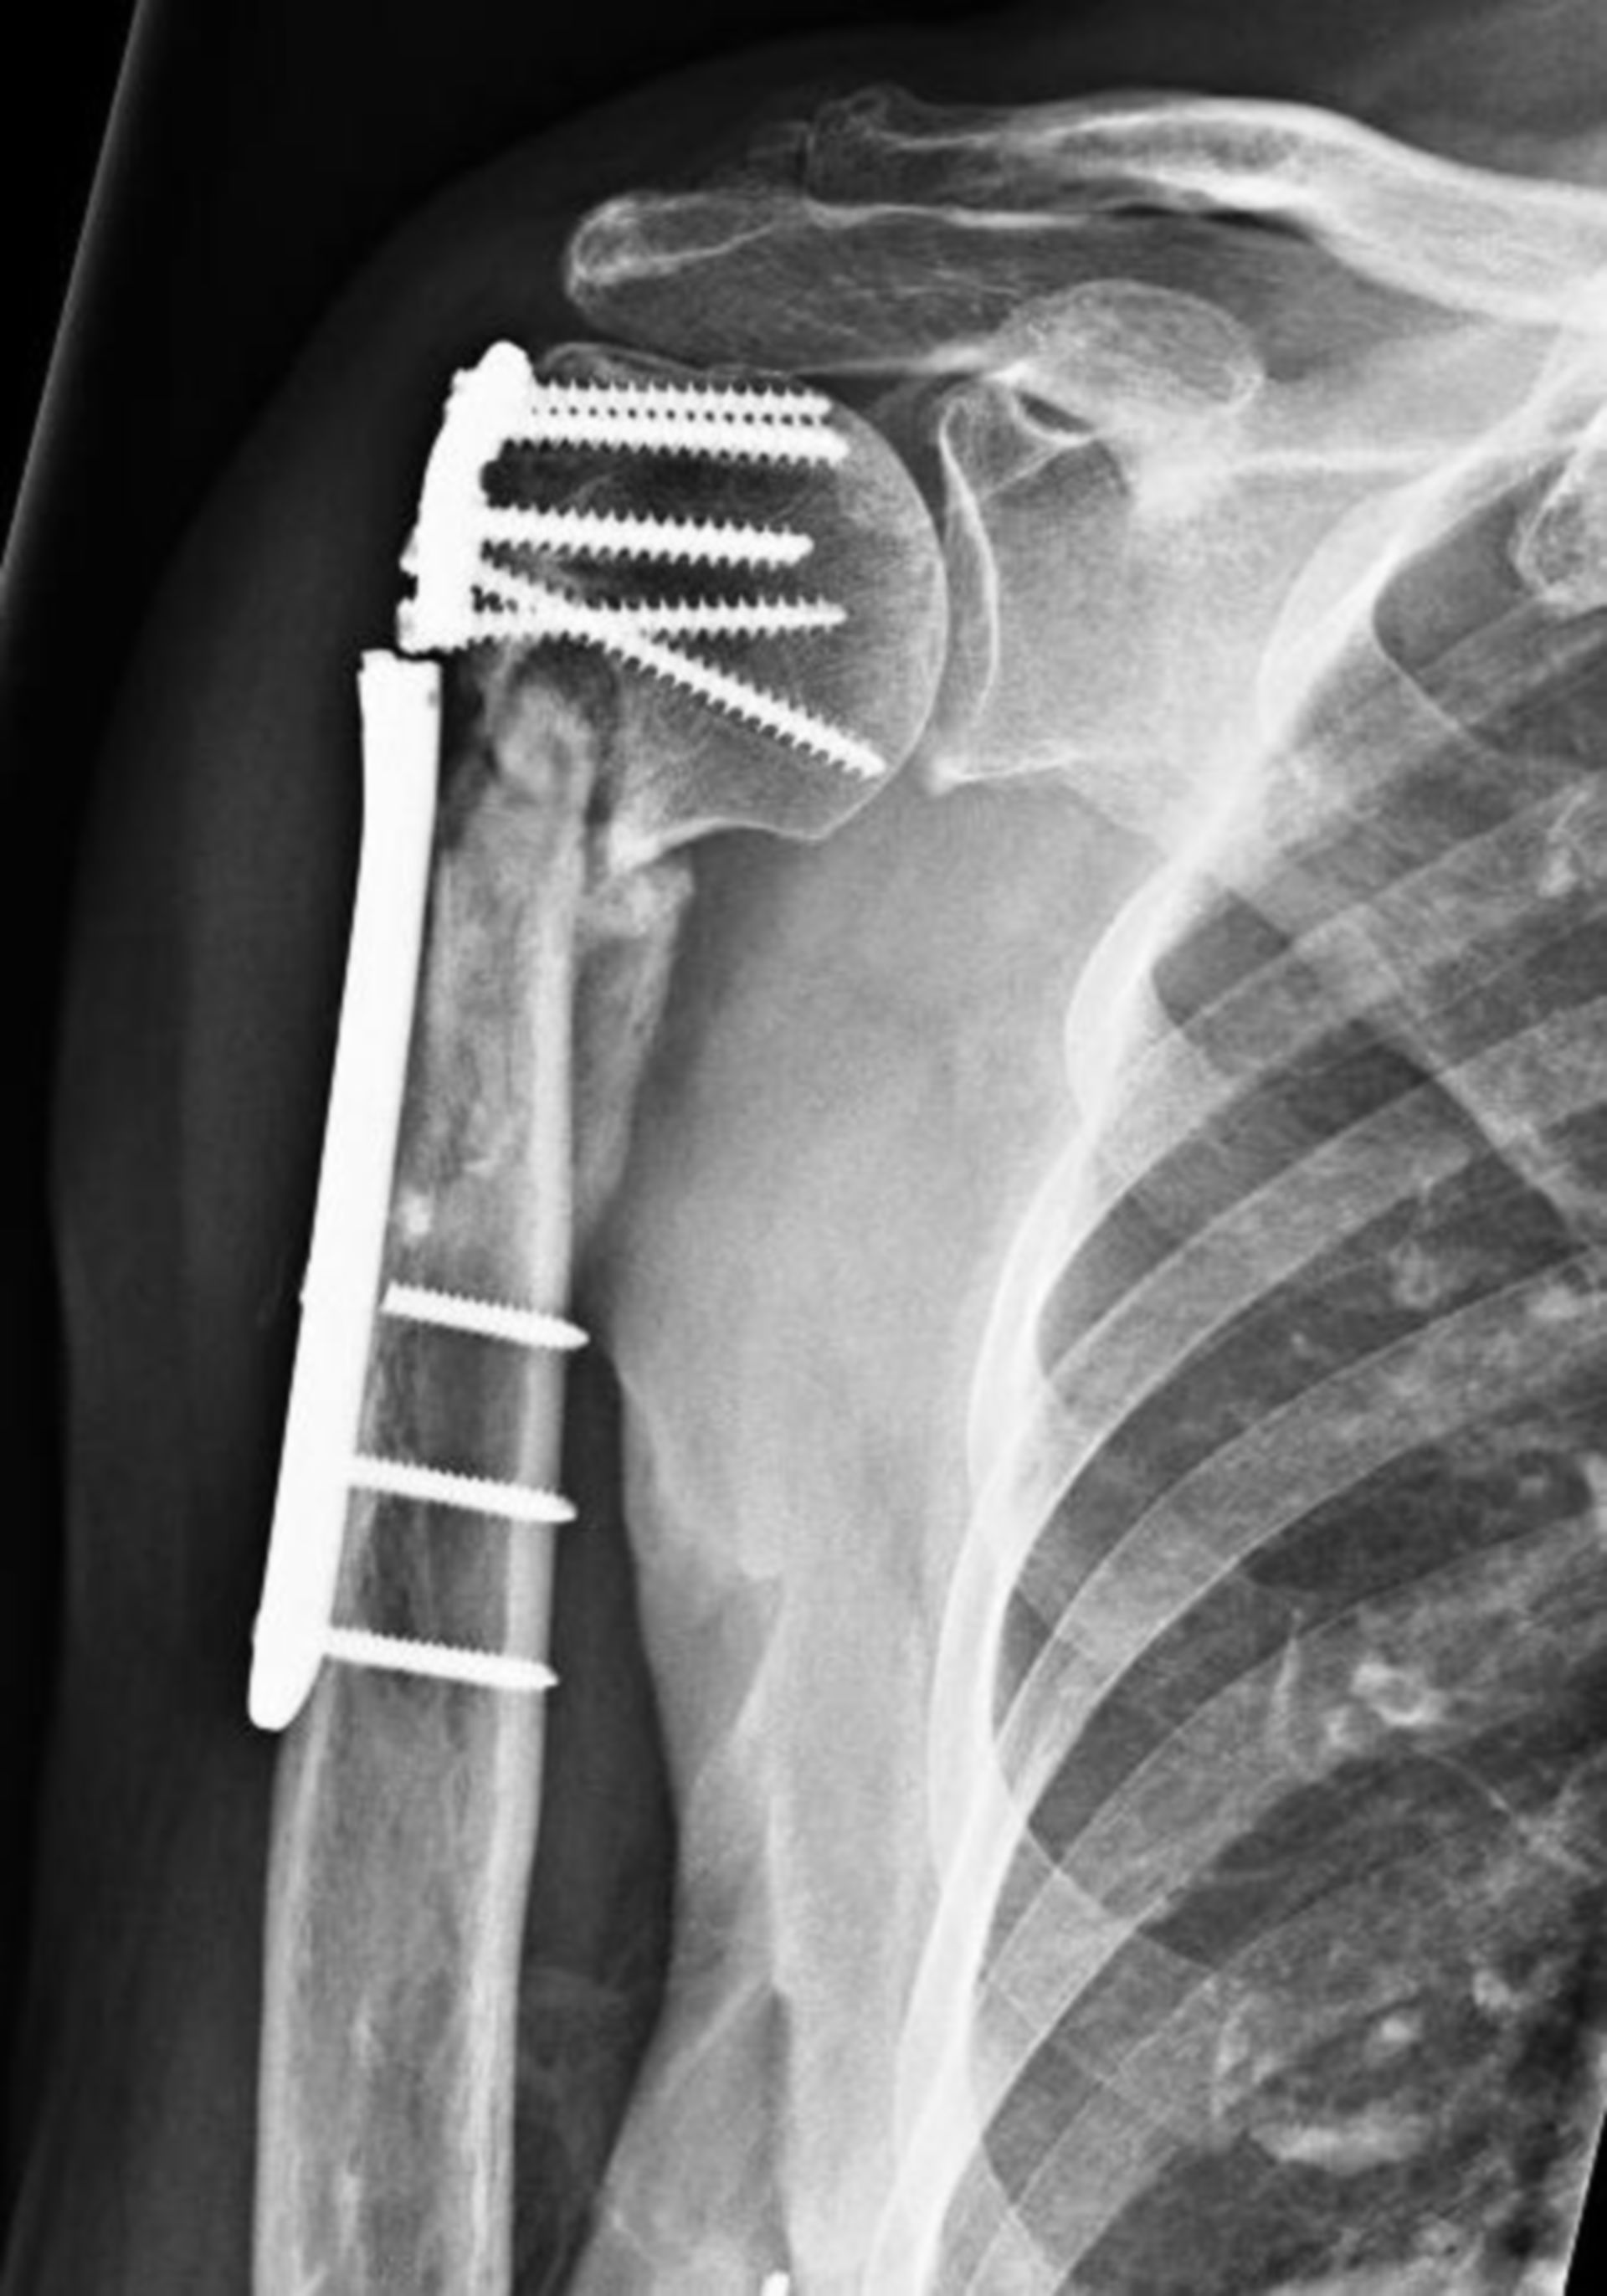 Upper arm fracture - plate fracture